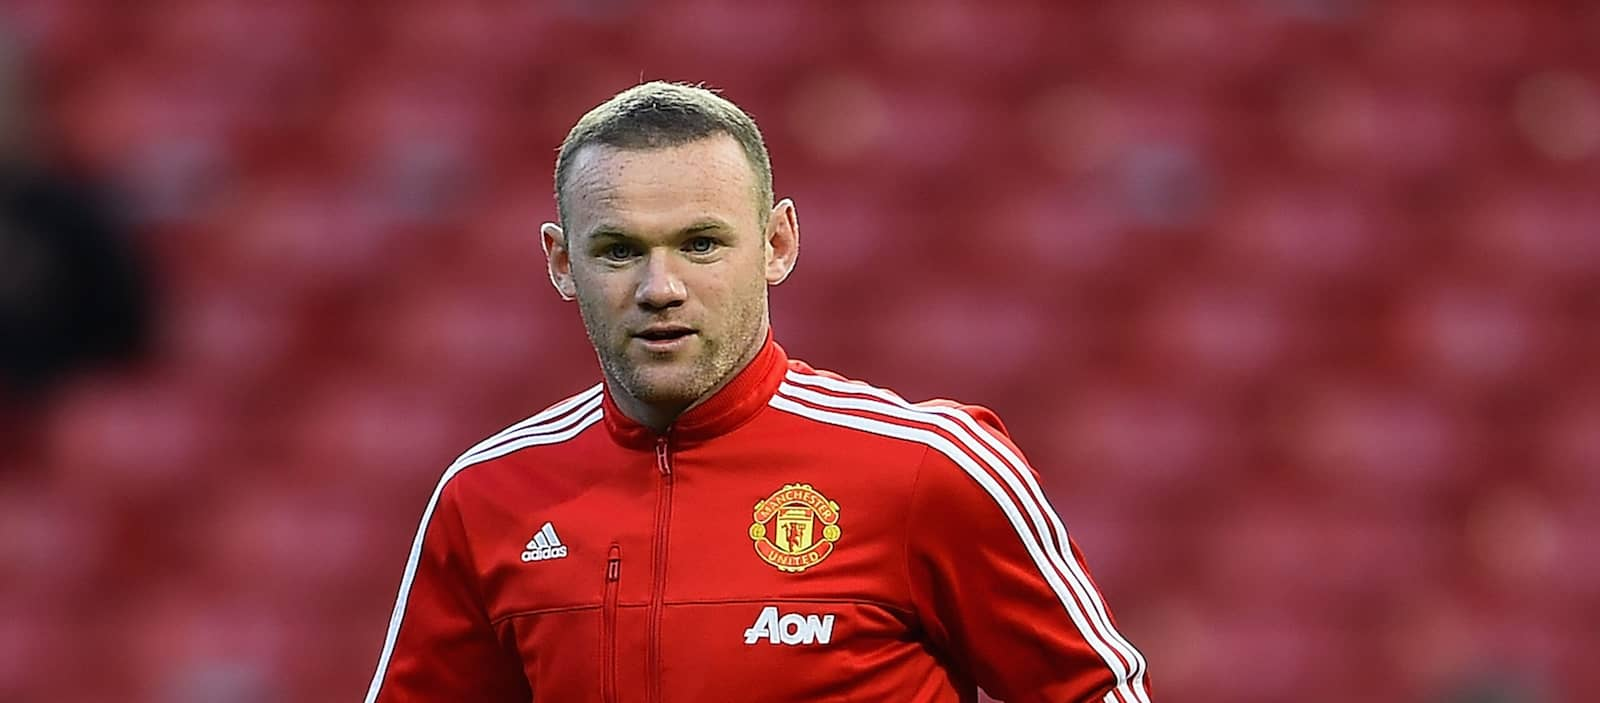 LIVE: Man United news, transfers and gossip – Wayne Rooney admits he wants to emulate Paul Scholes